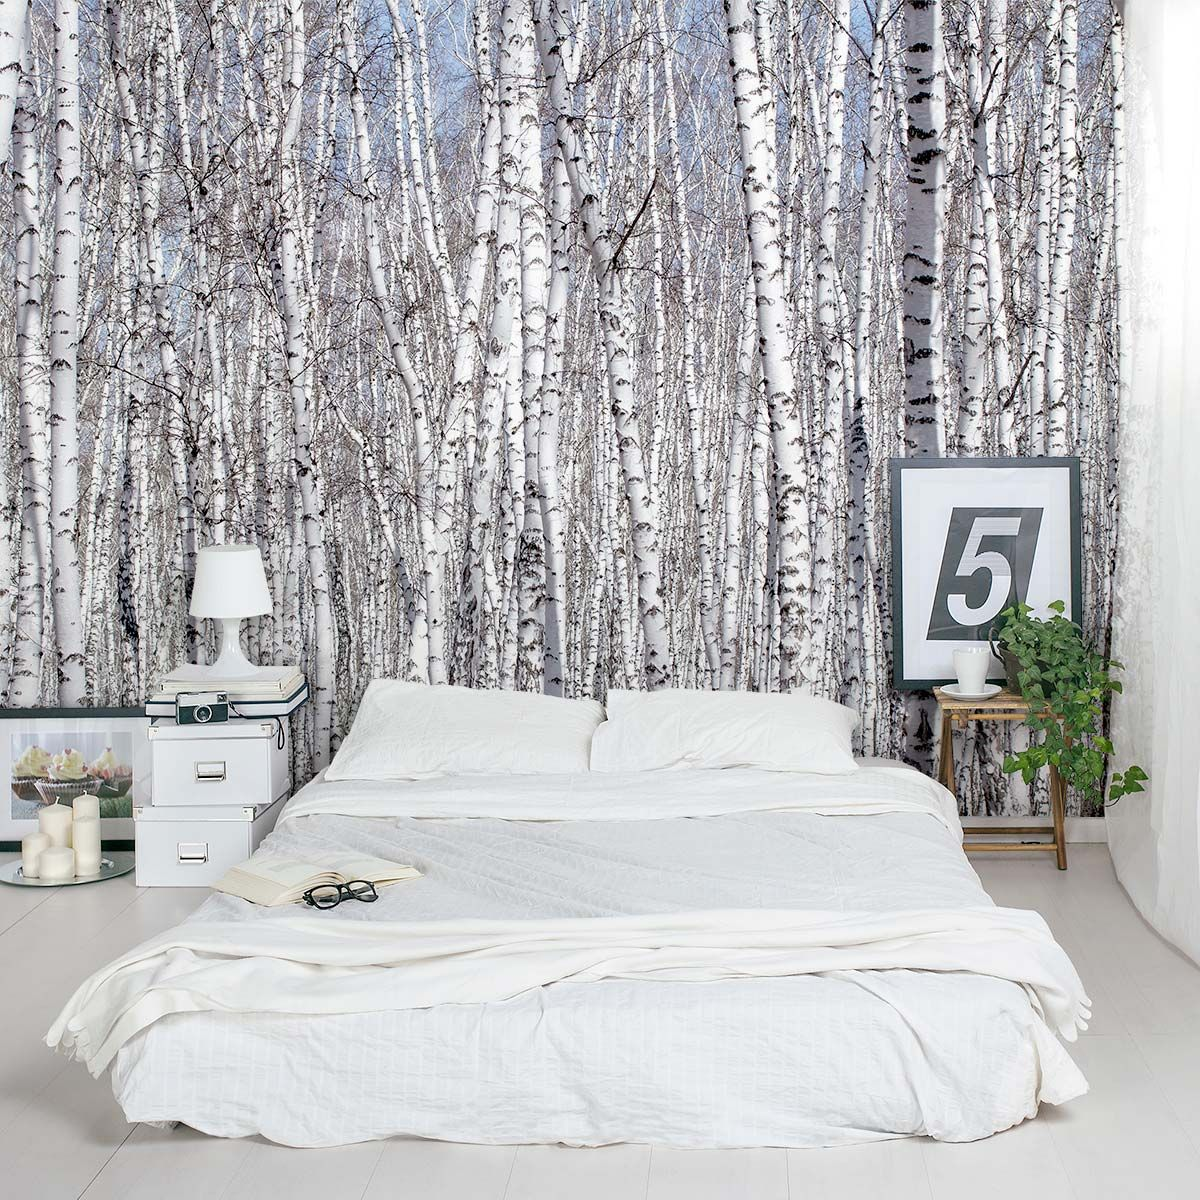 White birch trees wall mural things i want for a future for Birch tree forest wall mural